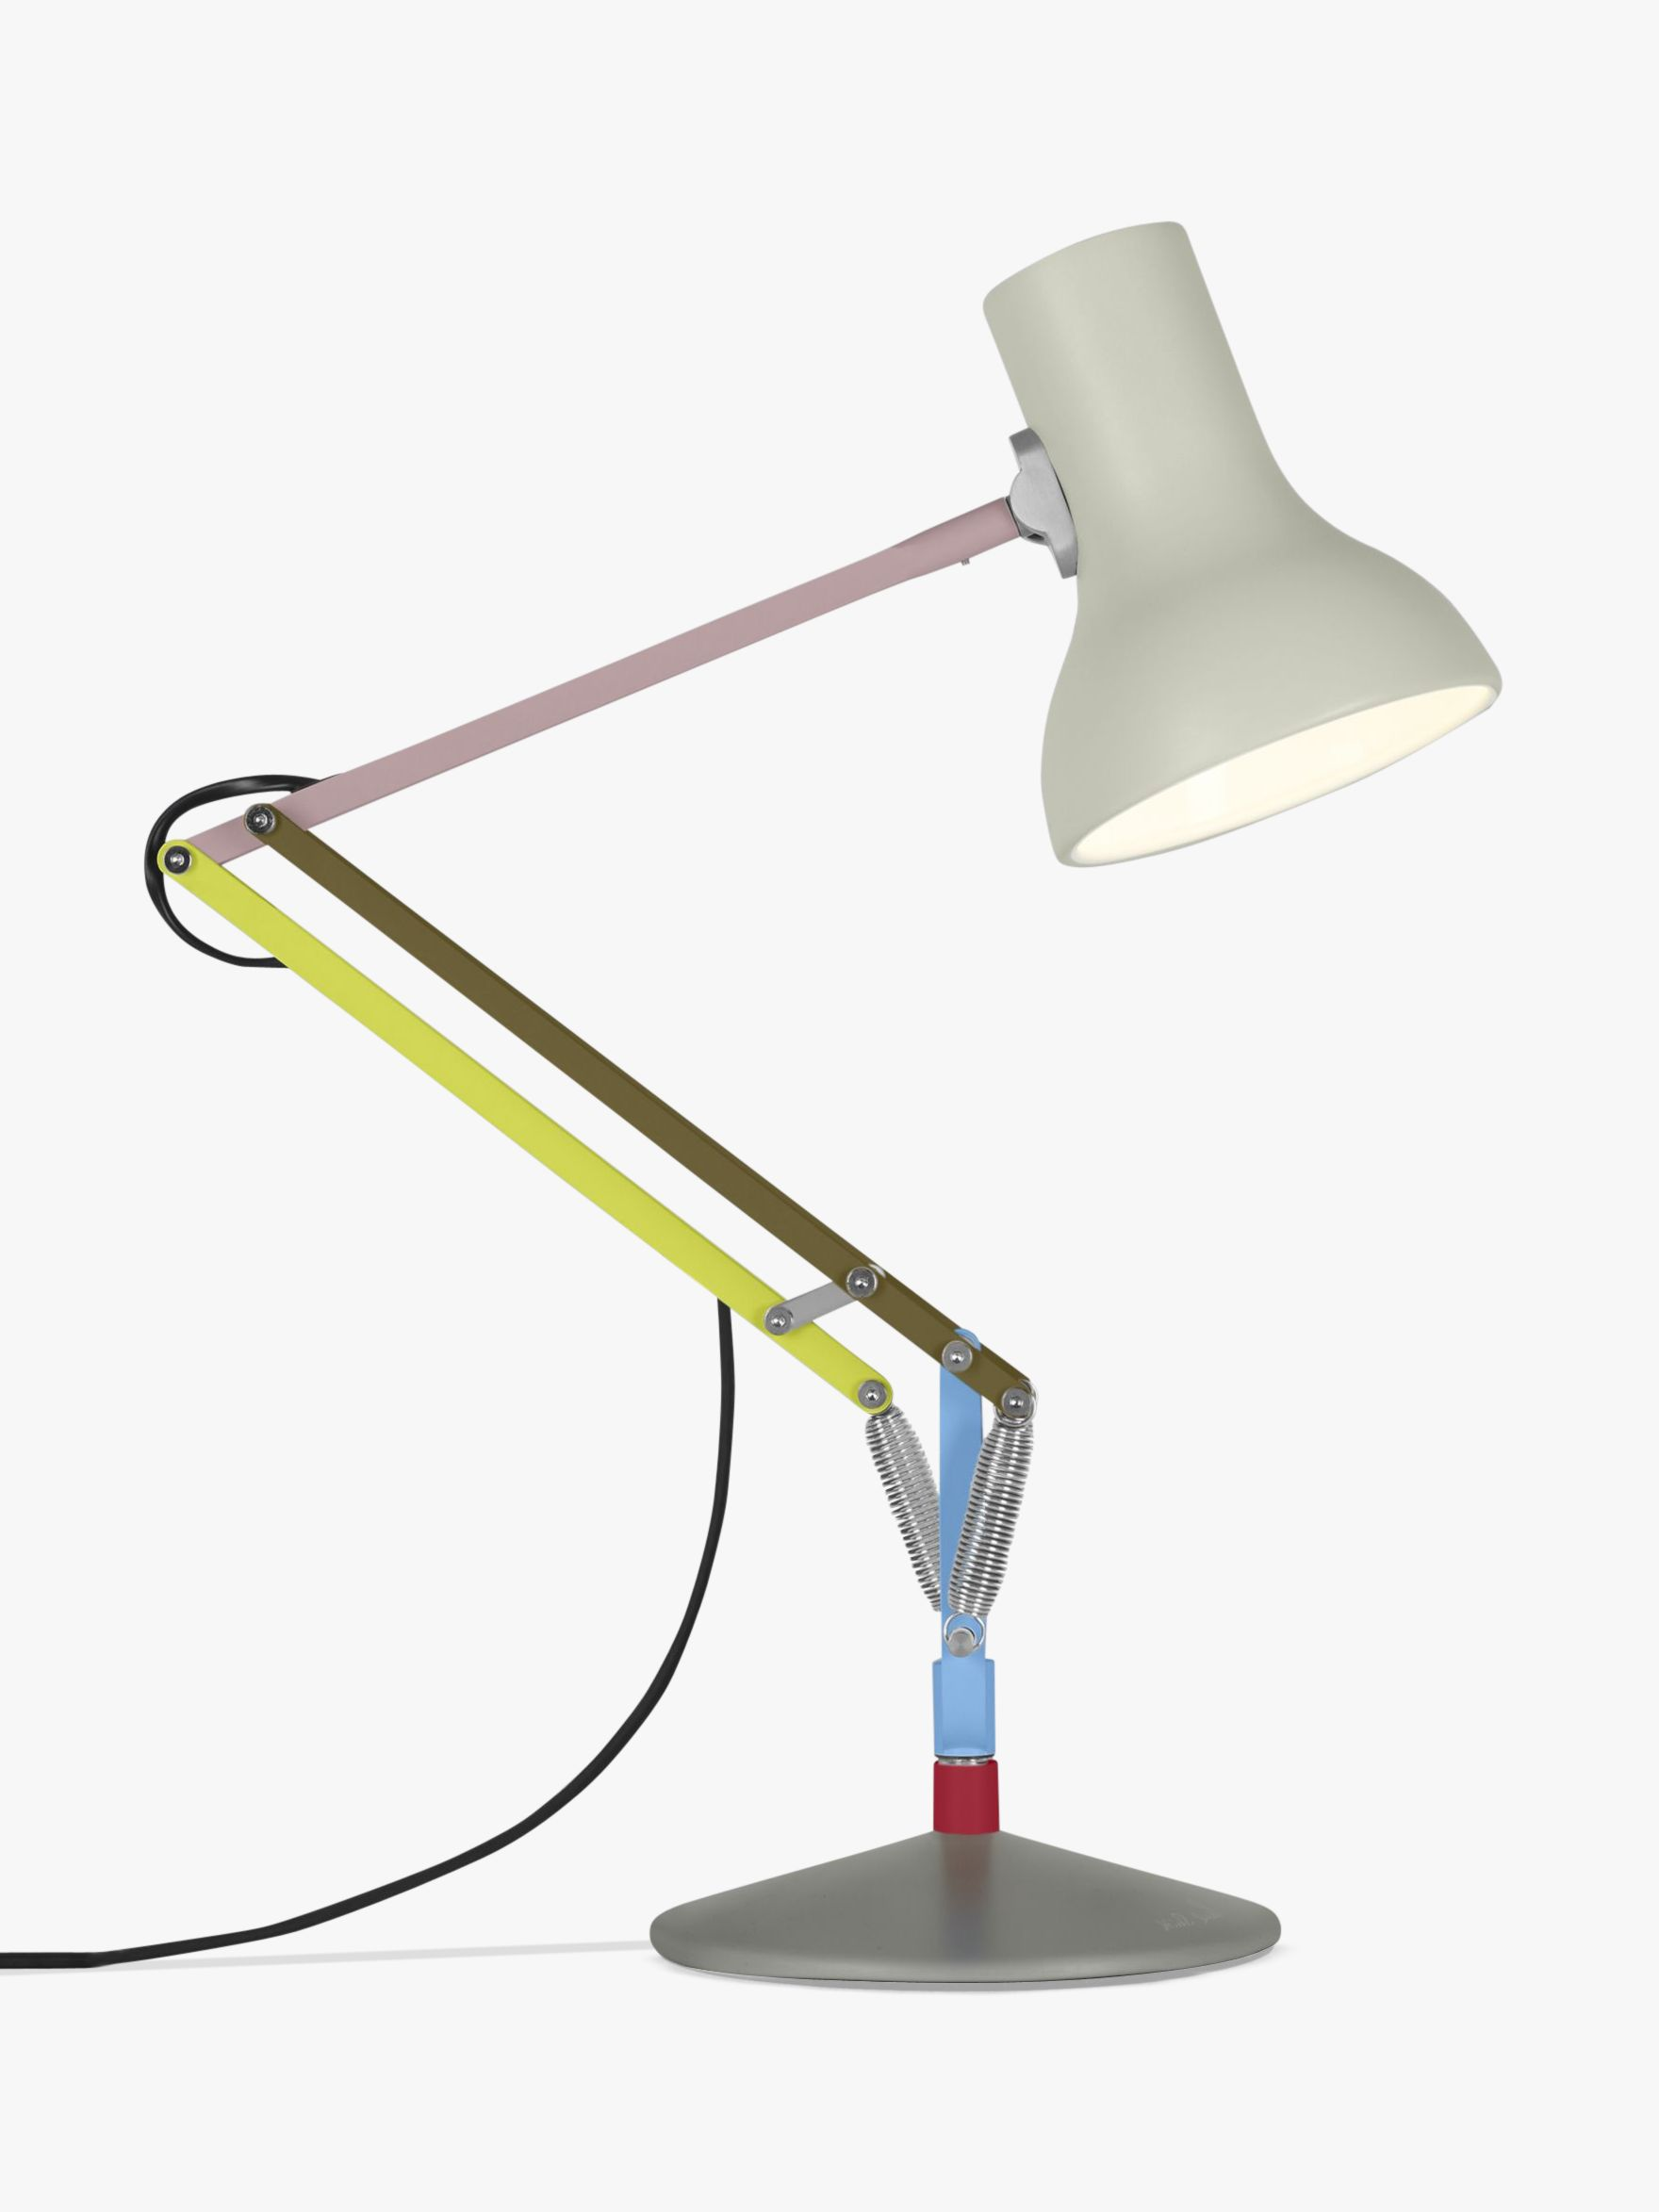 Anglepoise Anglepoise + Paul Smith Type 75 Mini Desk Lamp, Edition 1